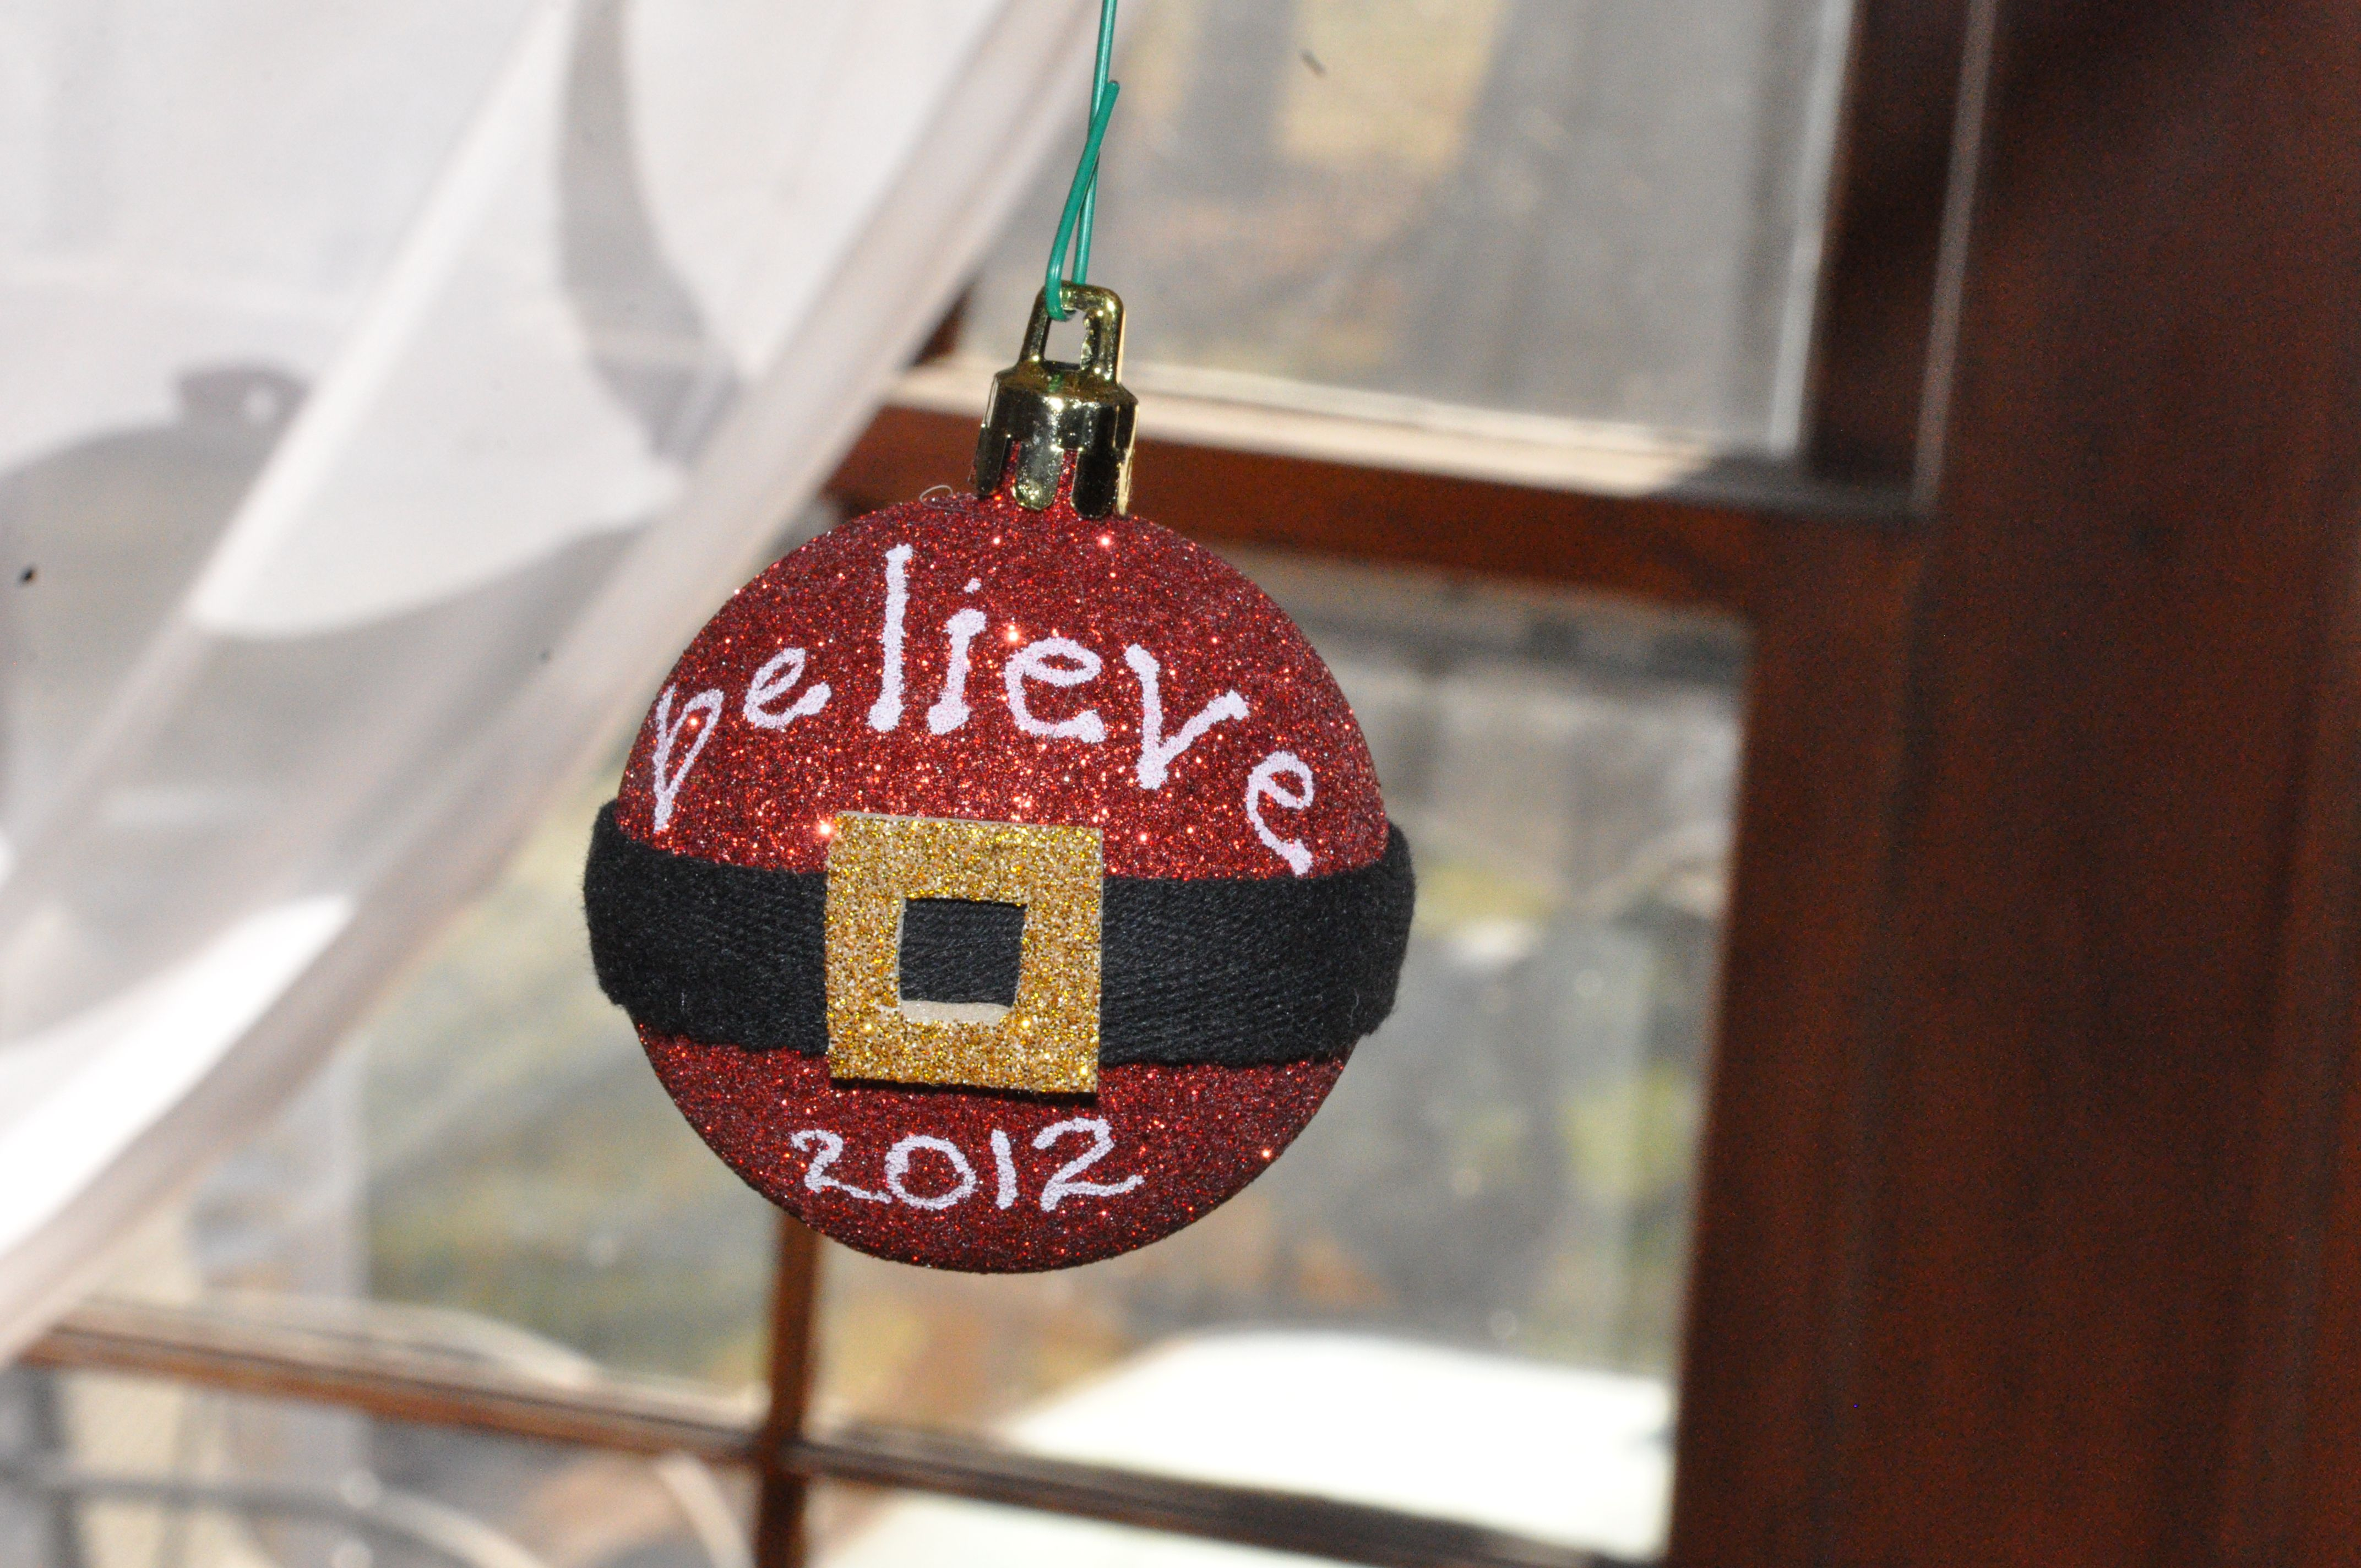 Believe Santa Ornament from Johnston family 2012. Some black ribbon and sparkly foam accents.  One of my favorites. #diy #madebyjackie